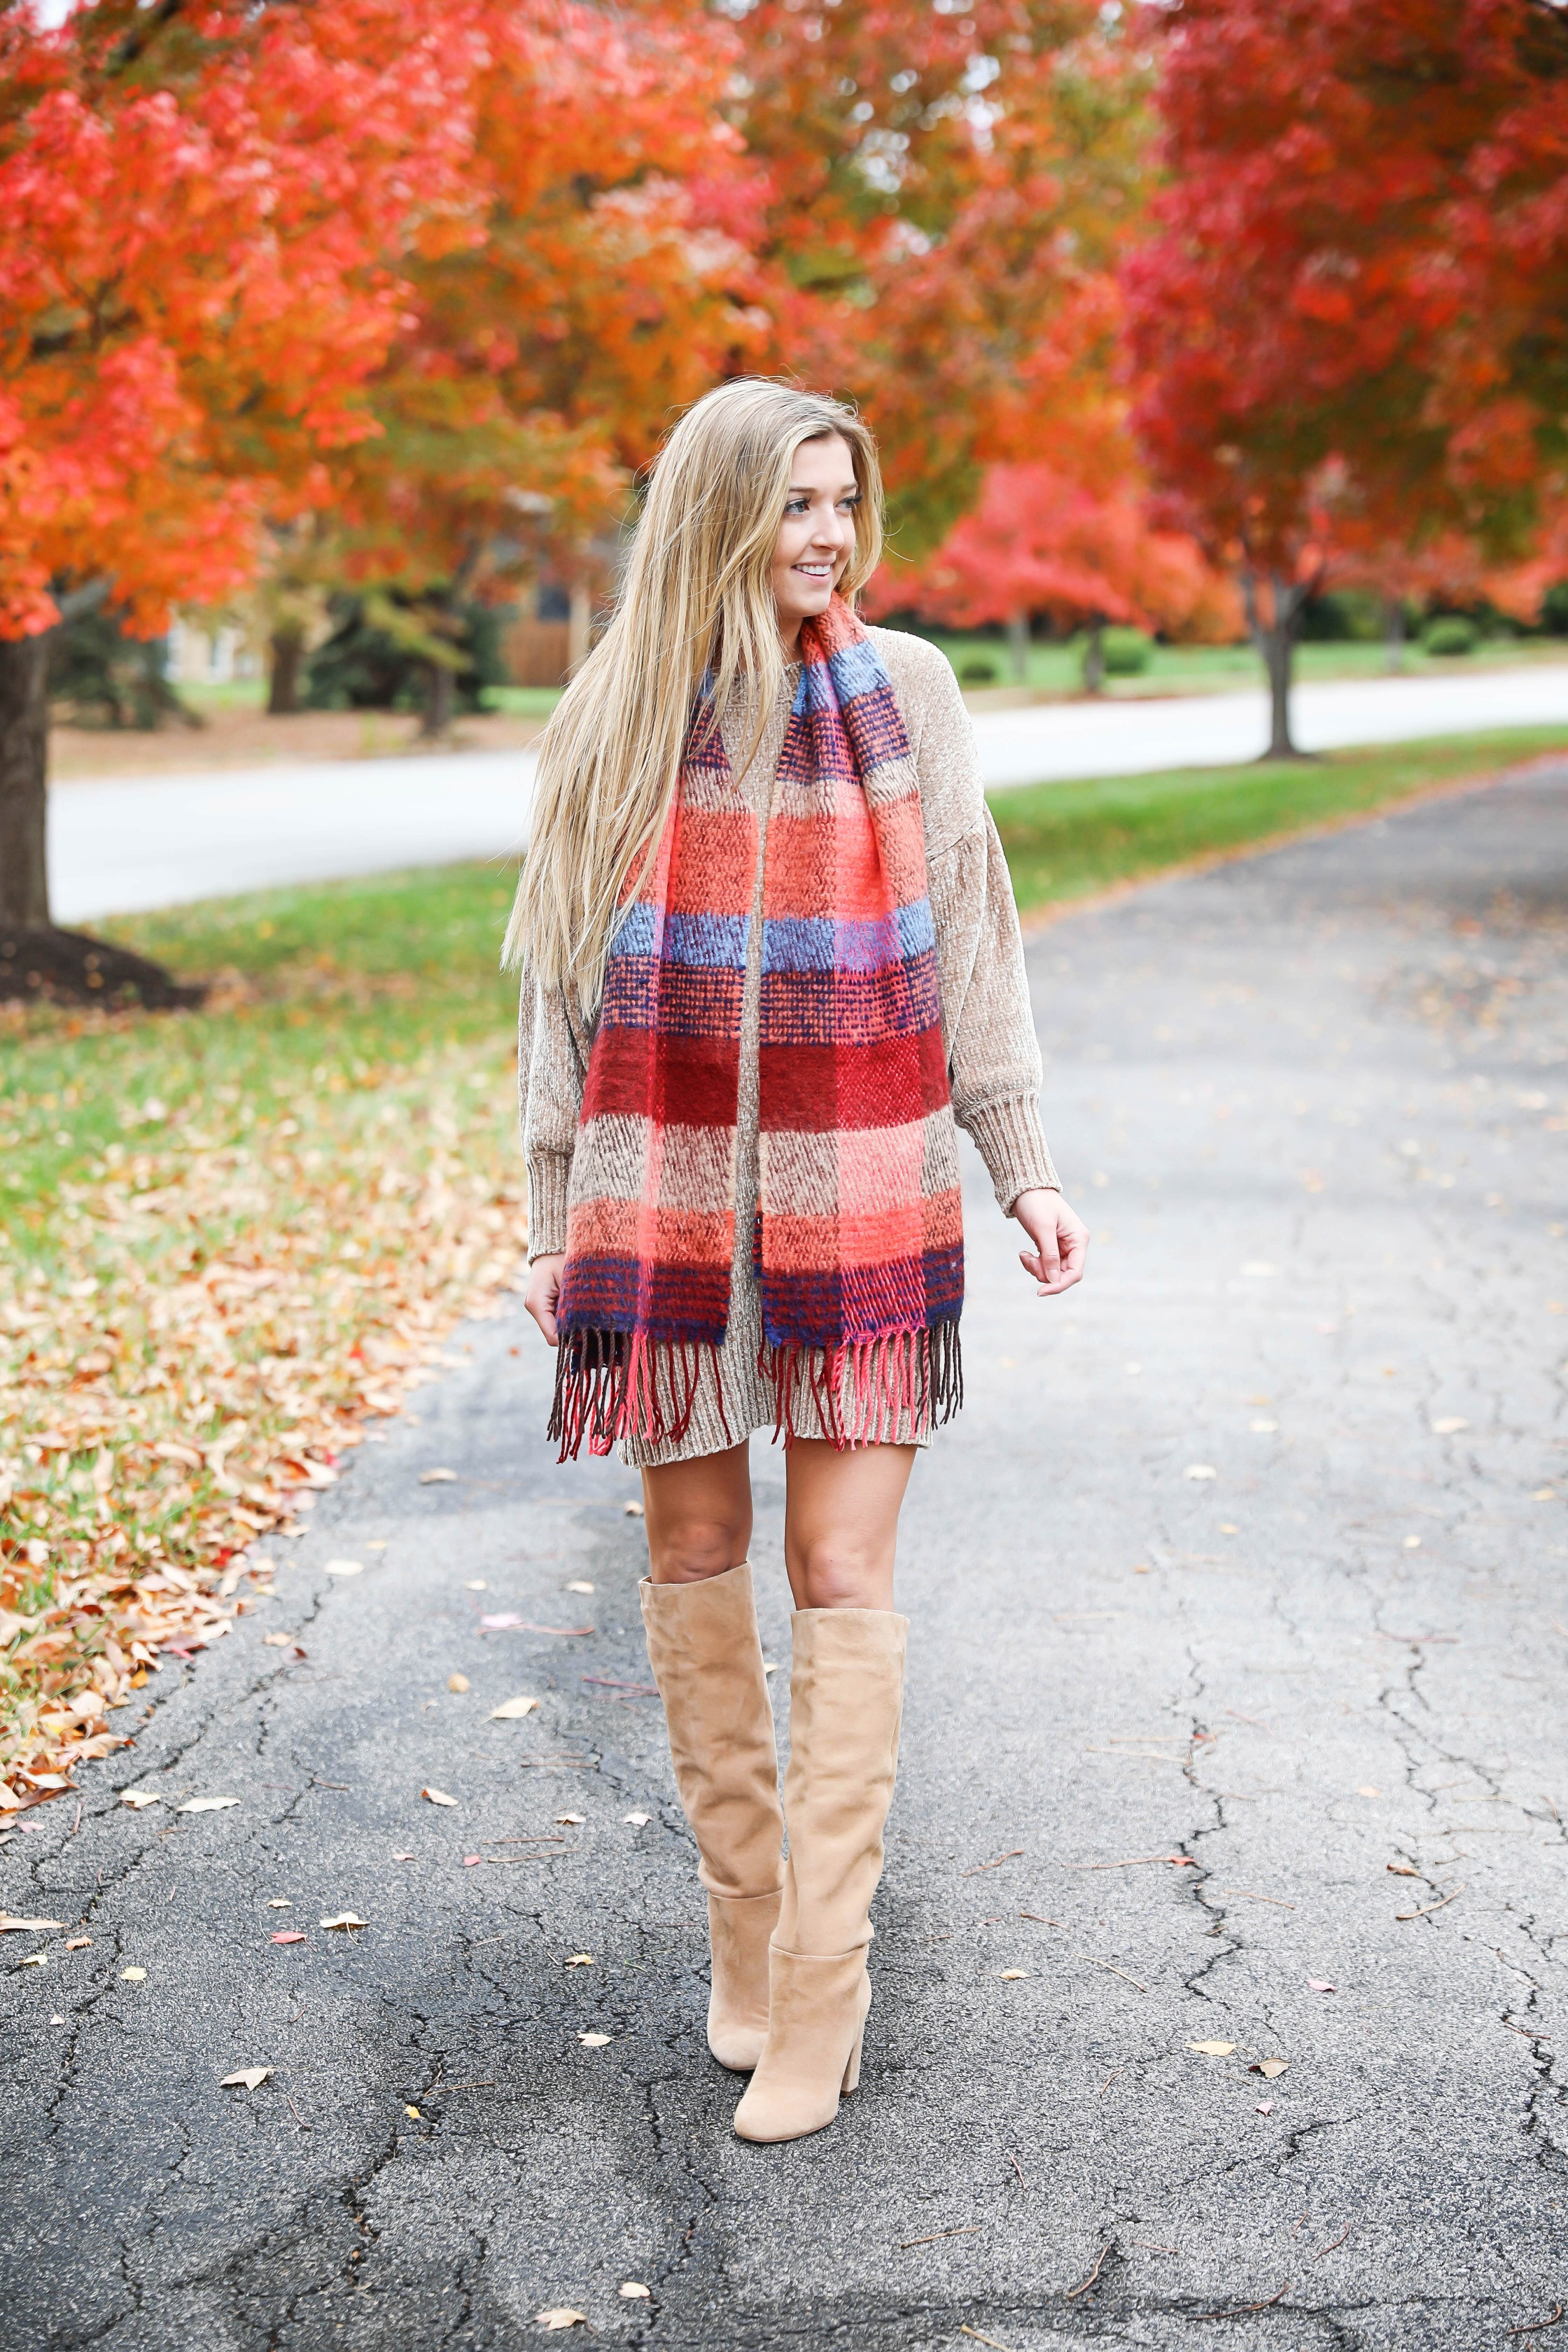 Chenille sweater dress form Red Dress Boutique! I love sweater dresses and chenille is my favorite trend for fall 2018! I paired it with this cute plaid scarf and my favorite tan boots! Nothing like a cute fall outfit in front of beautiful red autumn leaves on the trees! Details on fashion blog daily dose of charm by lauren lindmark